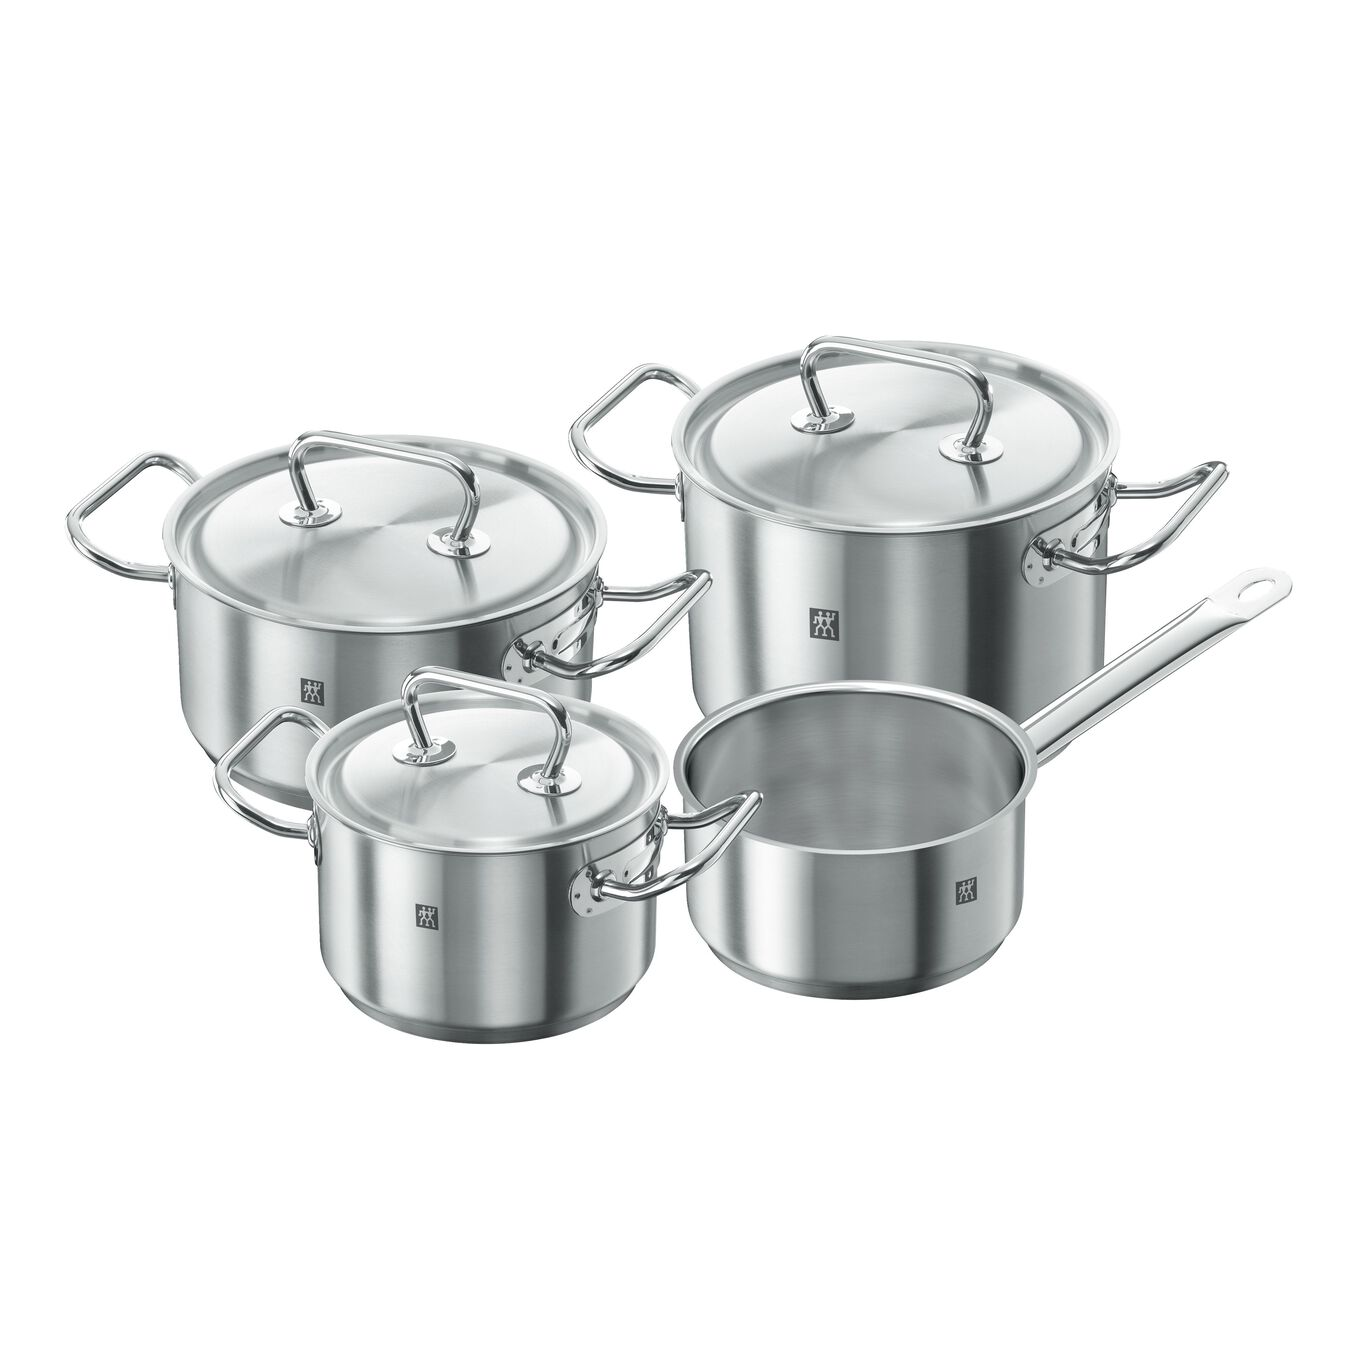 Ensemble de casseroles 4-pcs,,large 1